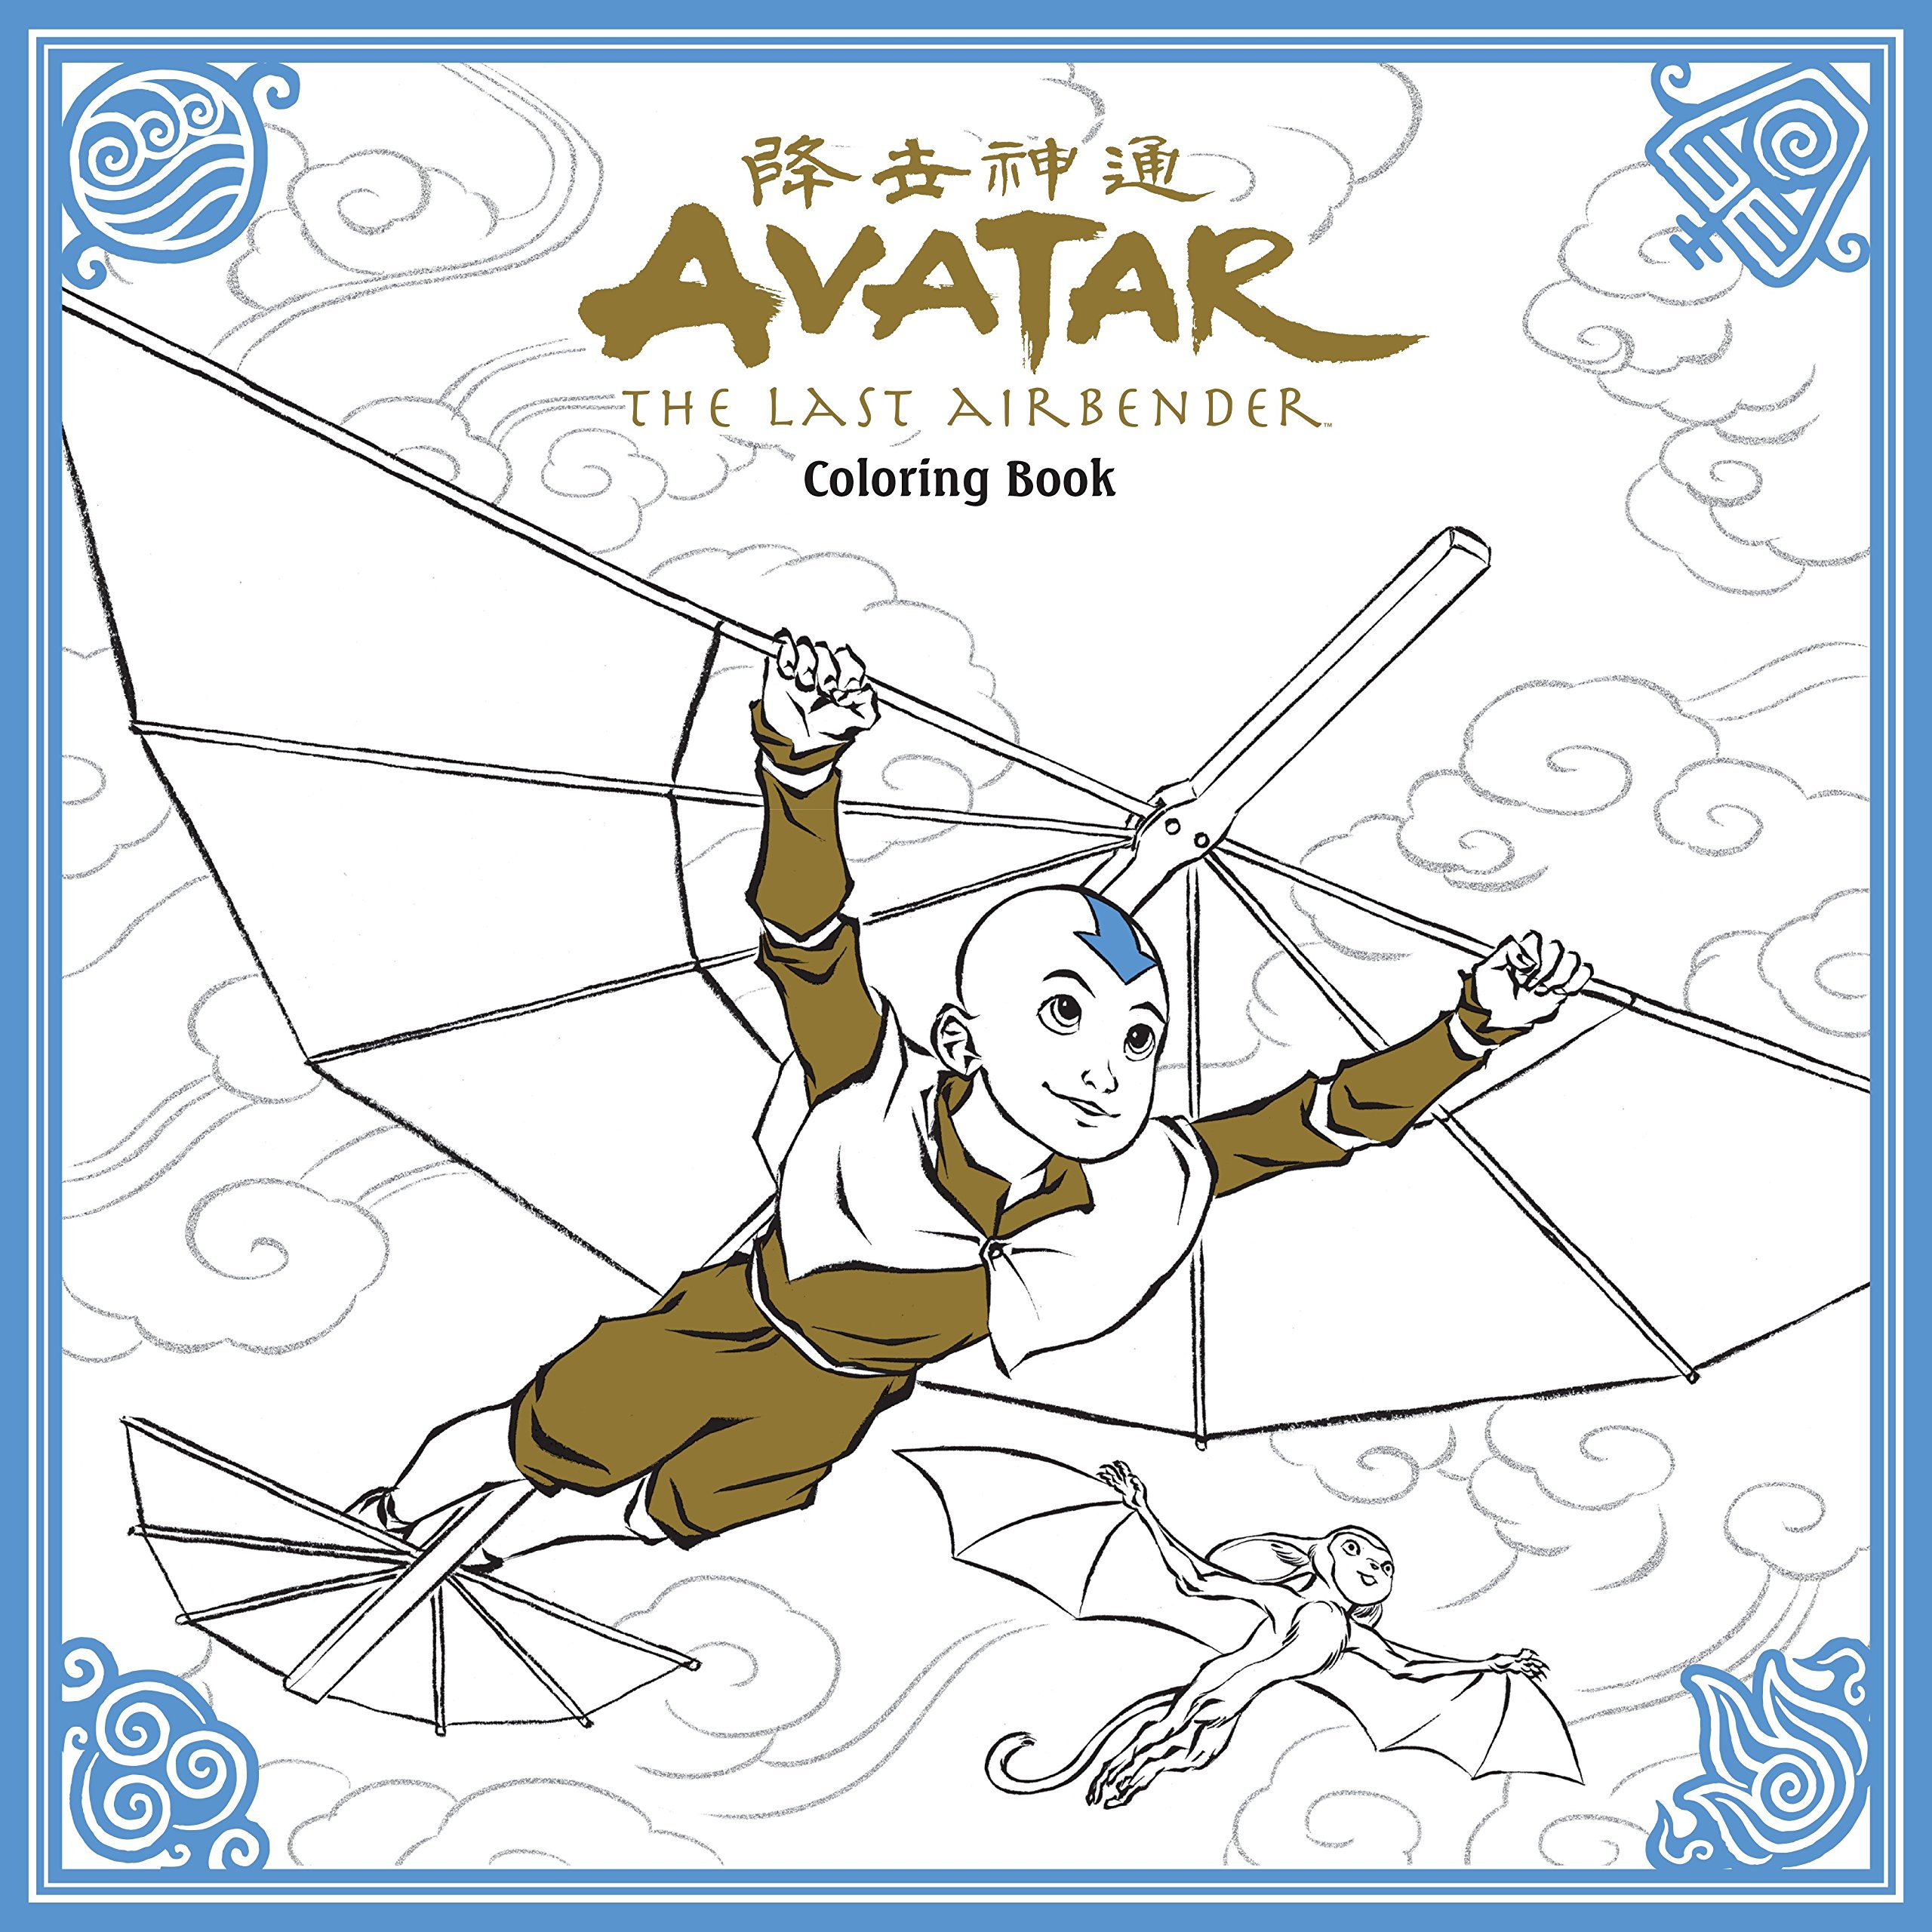 Avatar The Last Airbender Coloring Book Nickelodeon 9781506702360 Amazon Books